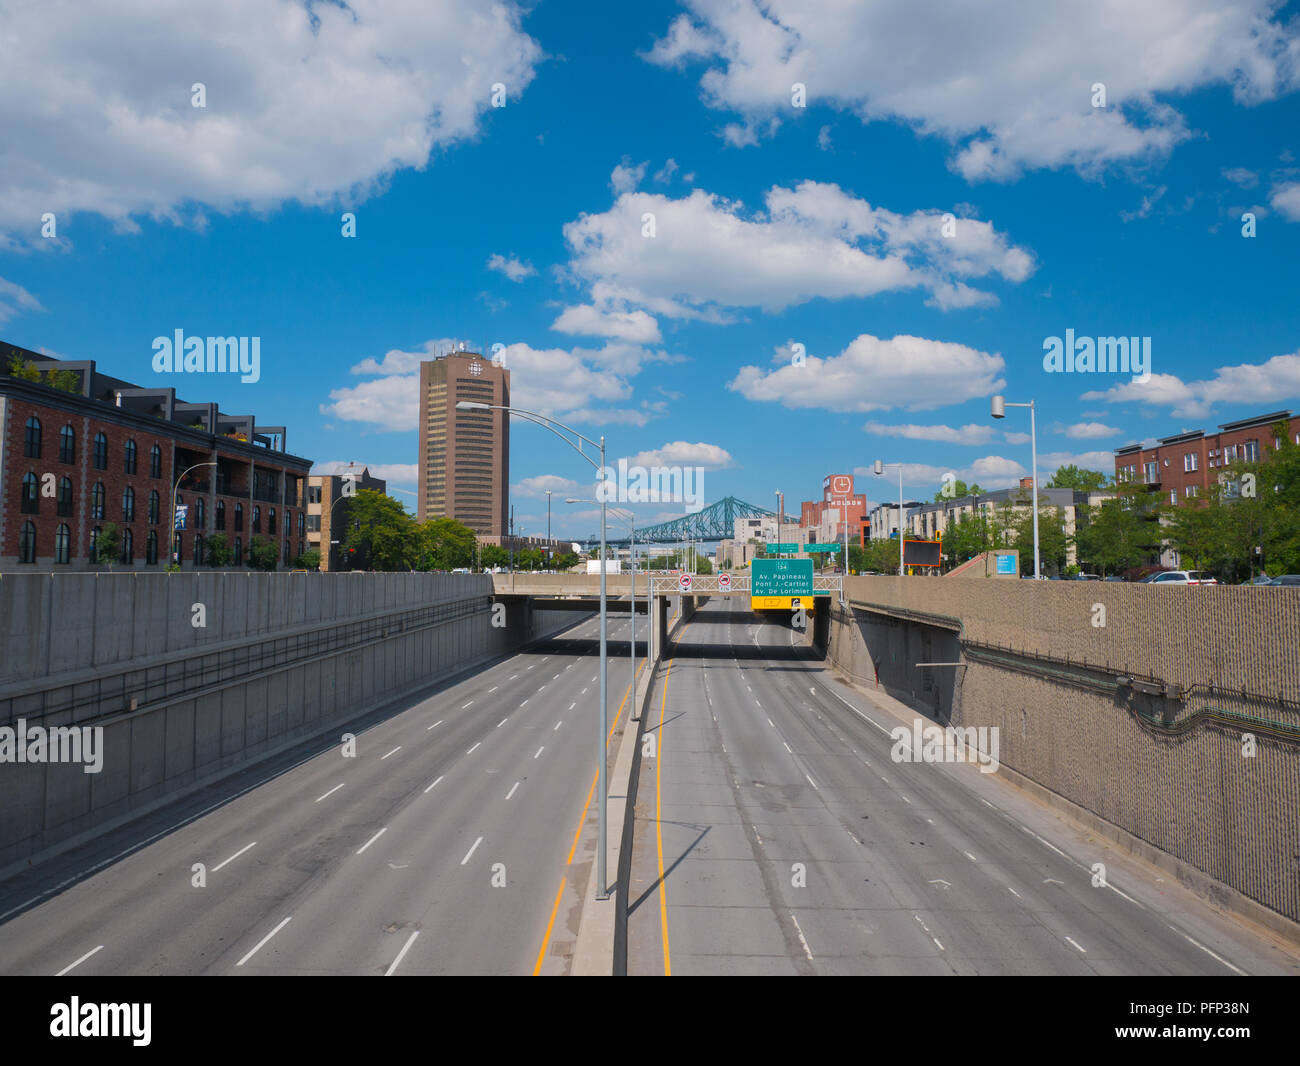 Montreal, Canada. August 19, 2018. Ville-Marie highway in Dowtown Montreal, Canada. Stock Photo